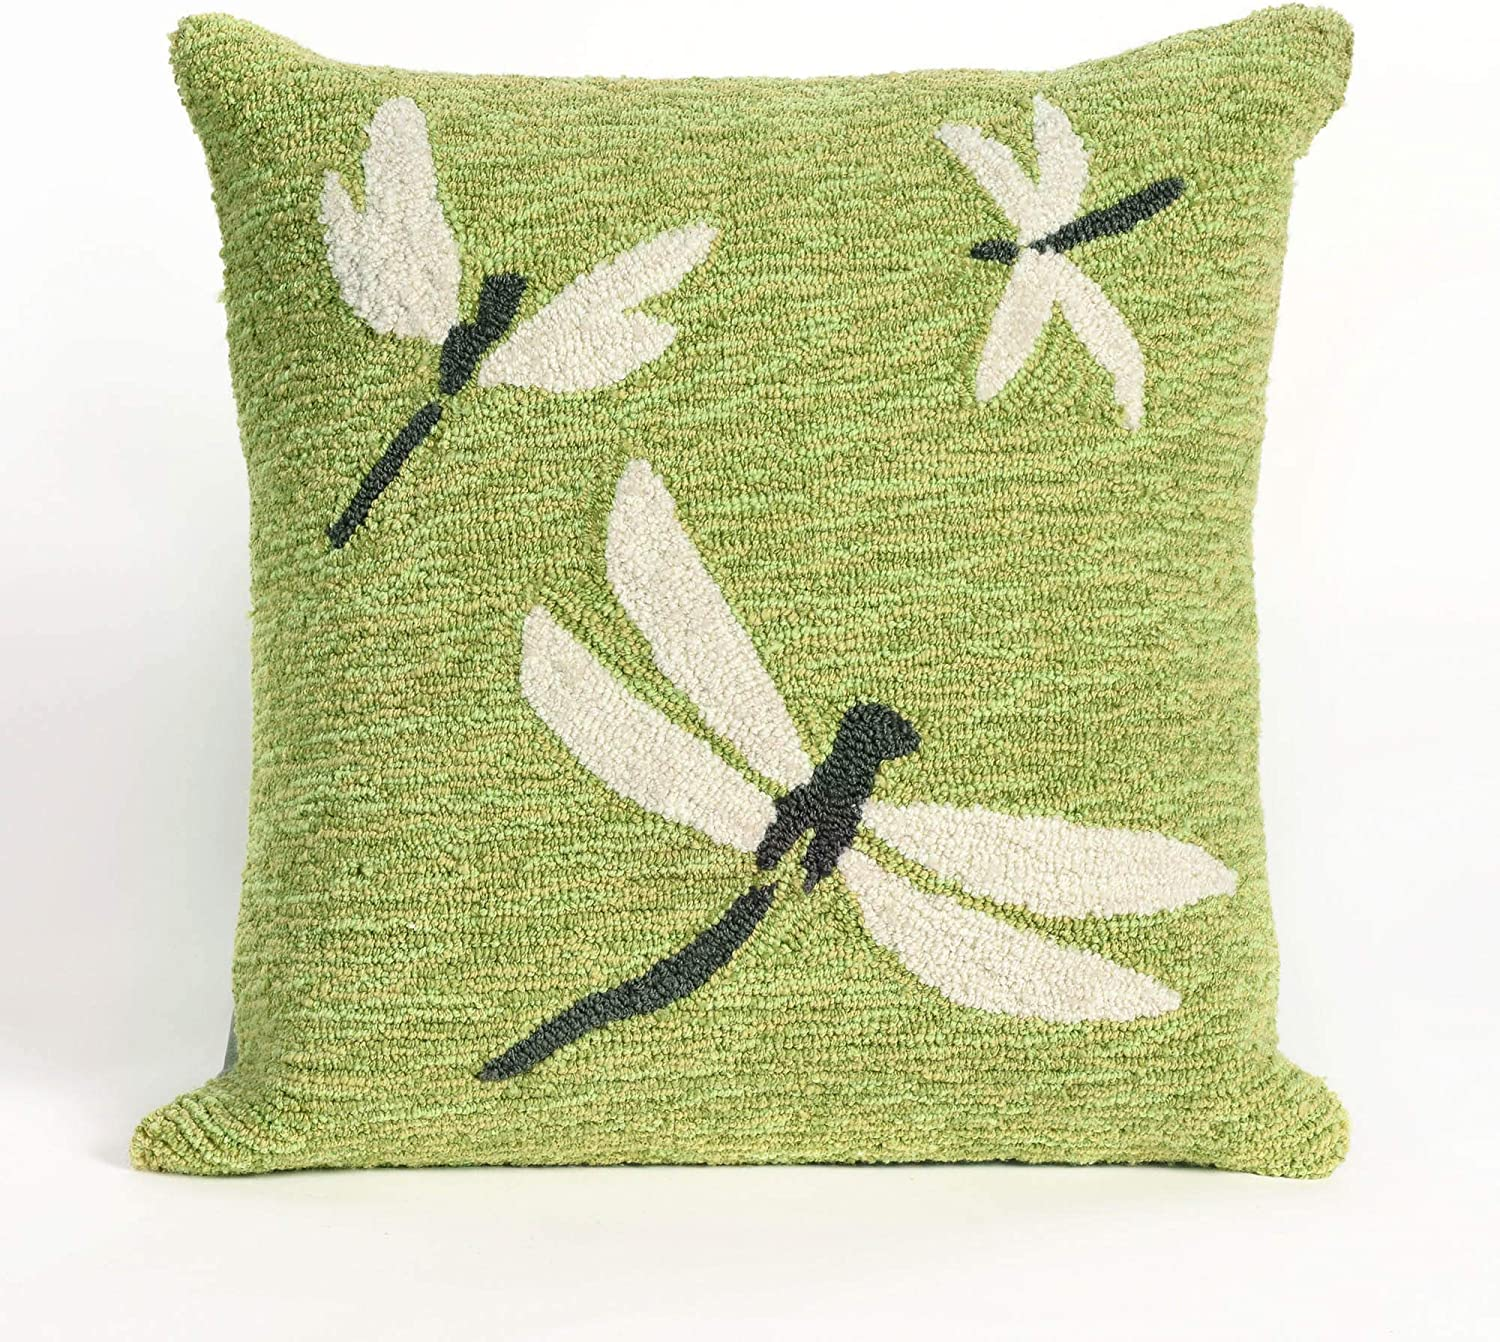 Liora Manne Whimsy Summer Dragon Indoor Outdoor Pillow, Green